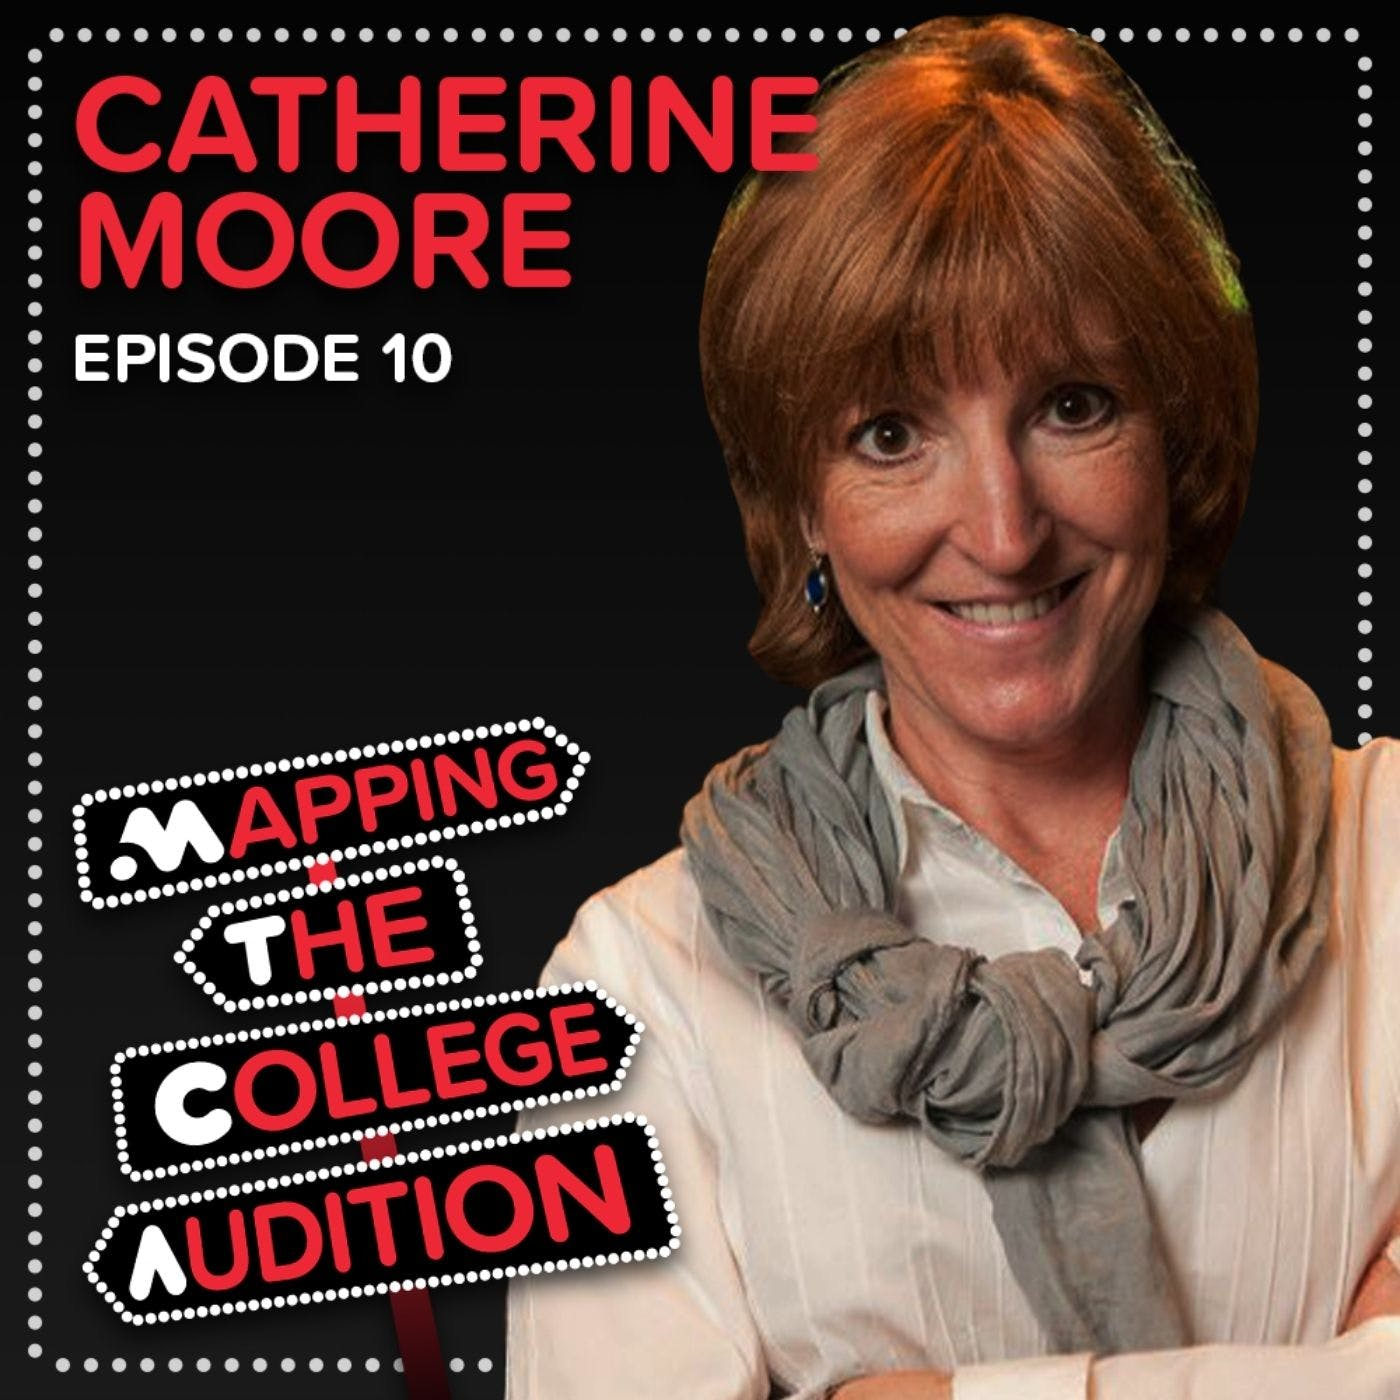 Ep. 10 (CDD): Catherine Moore from Carnegie Mellon University on Individuality and Being Immersed in Talent